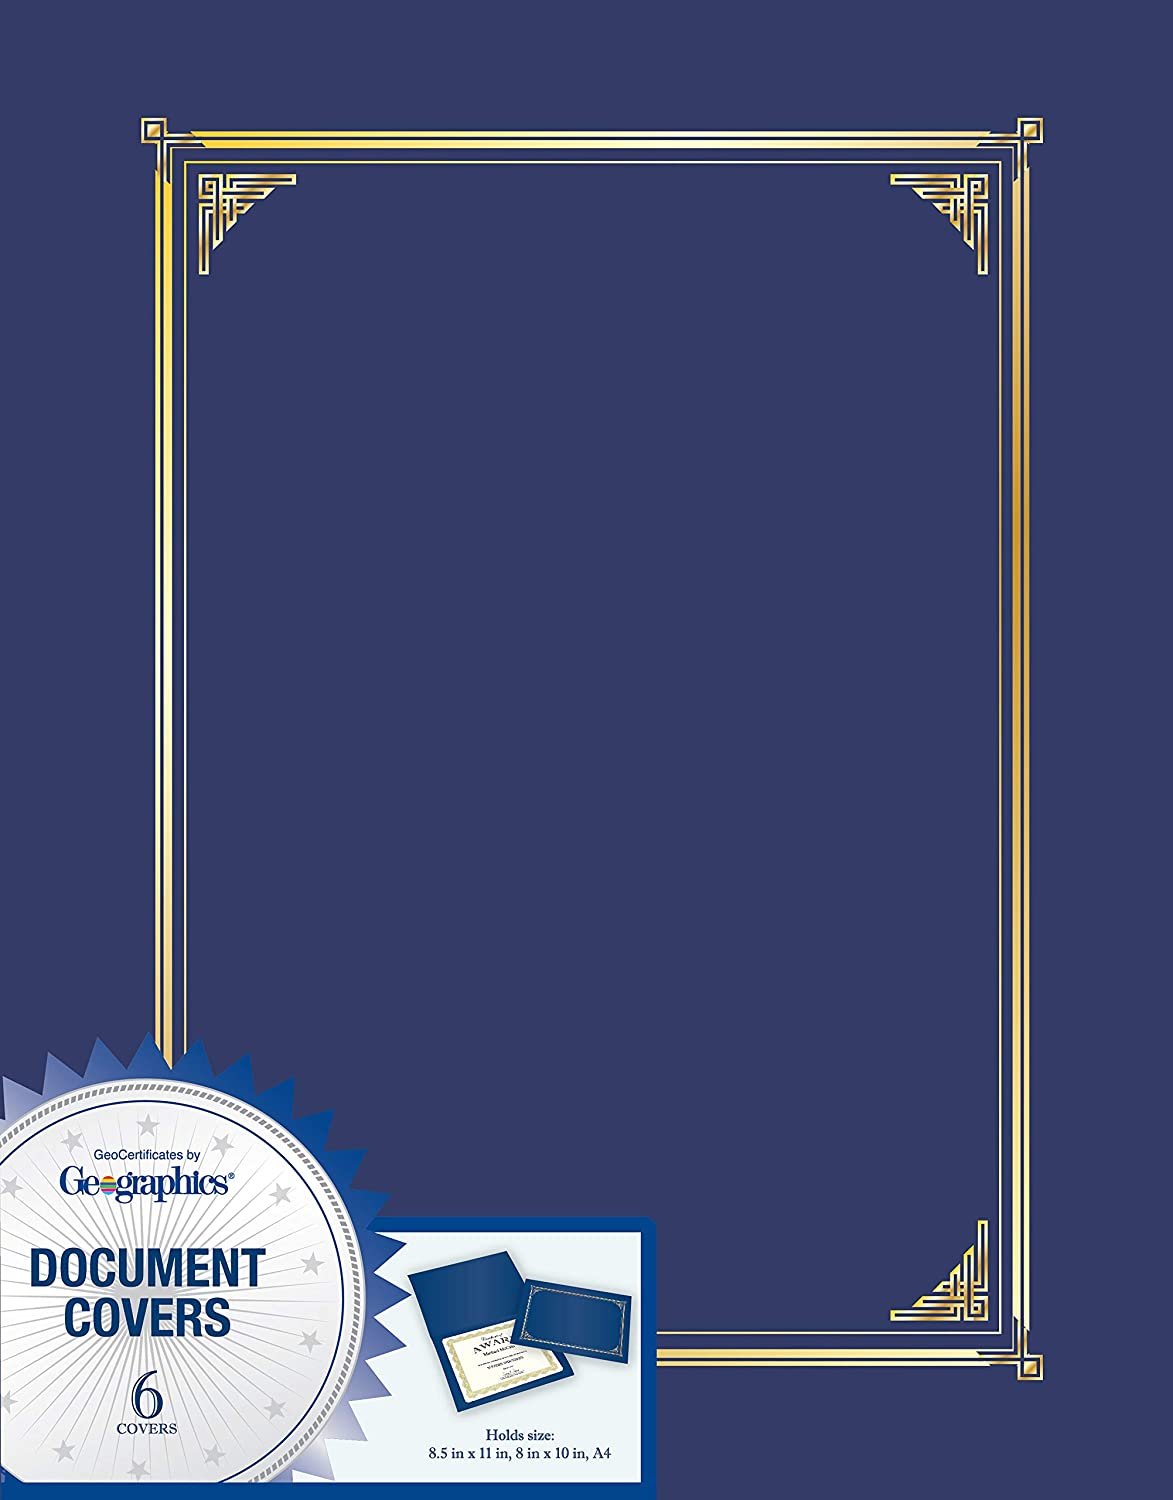 Geographics Certificate//Document Cover GEO45332